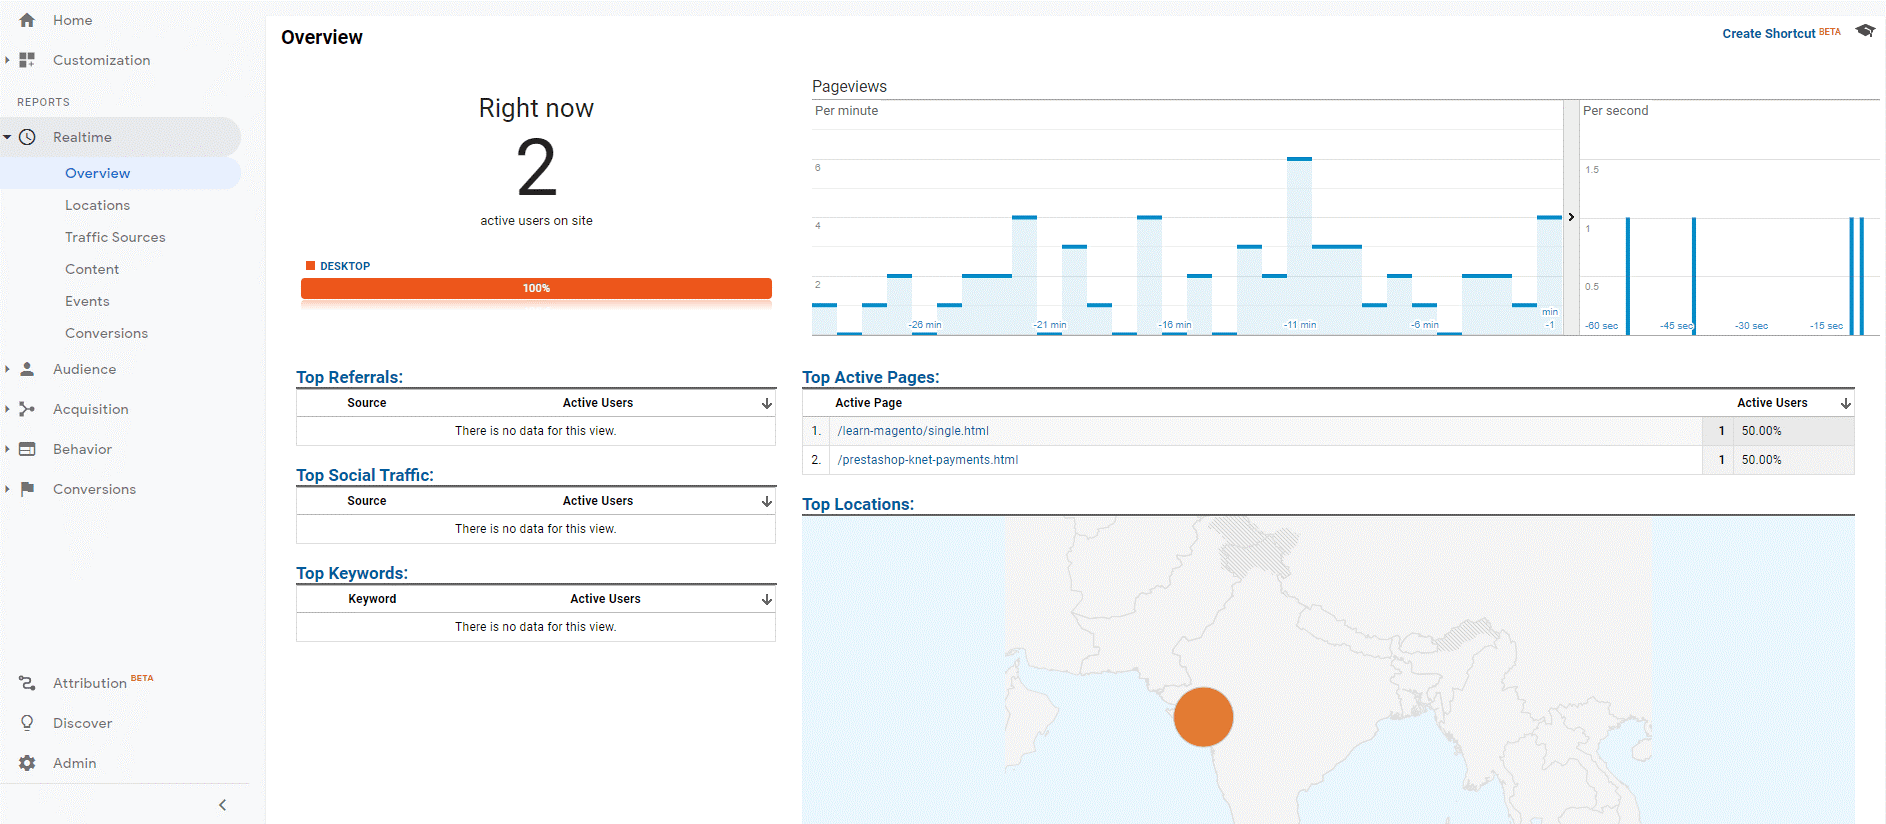 Realtime tracking